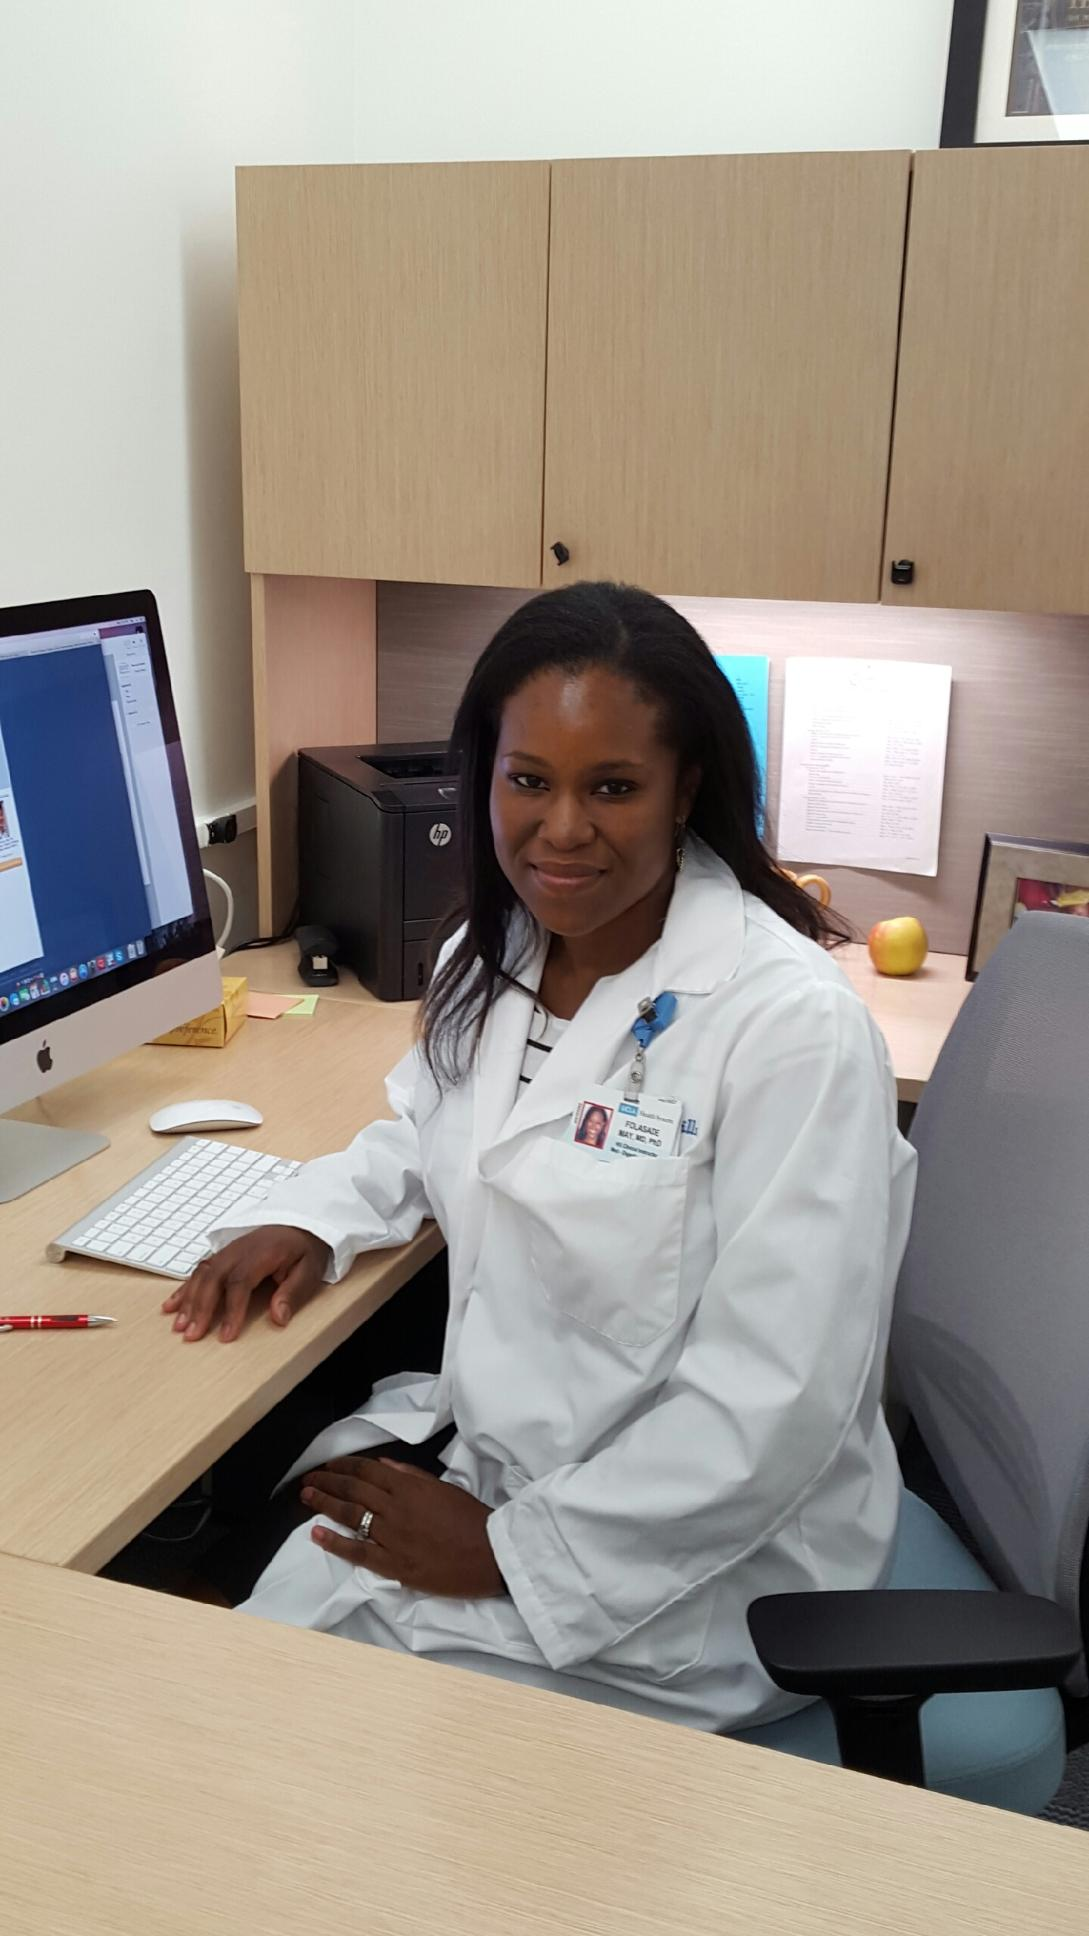 Dr. Fola May, Assistant Professor of Medicine in UCLA's Division of Digestive Diseases